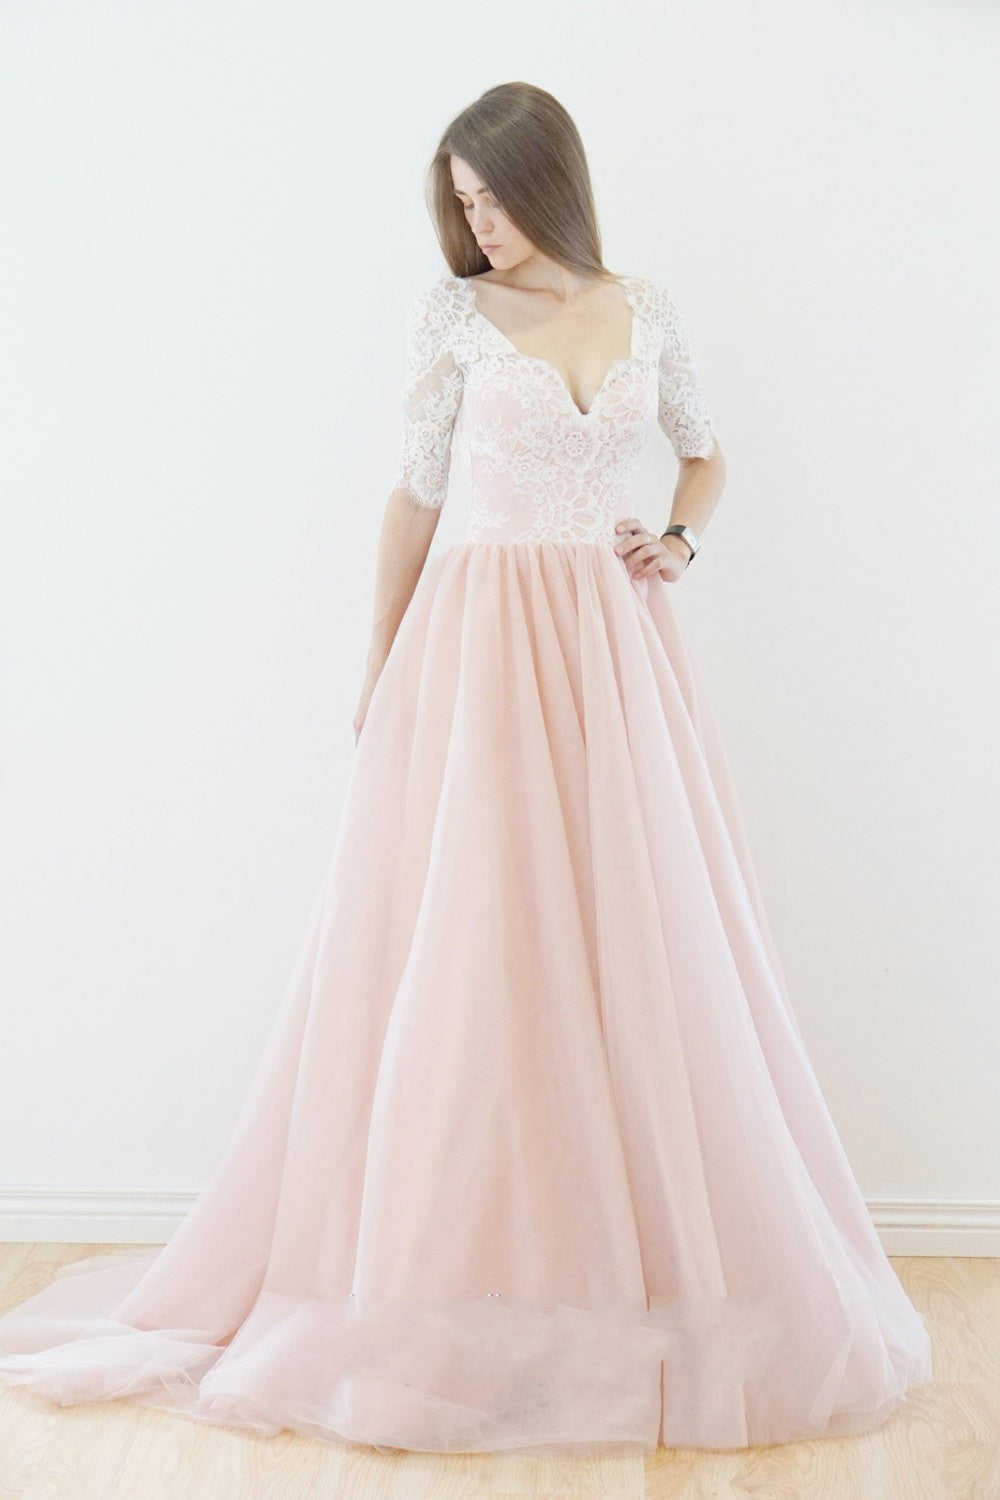 Off Shoulder Long Sleeve Blush Pink Wedding Dress - daisystyledress